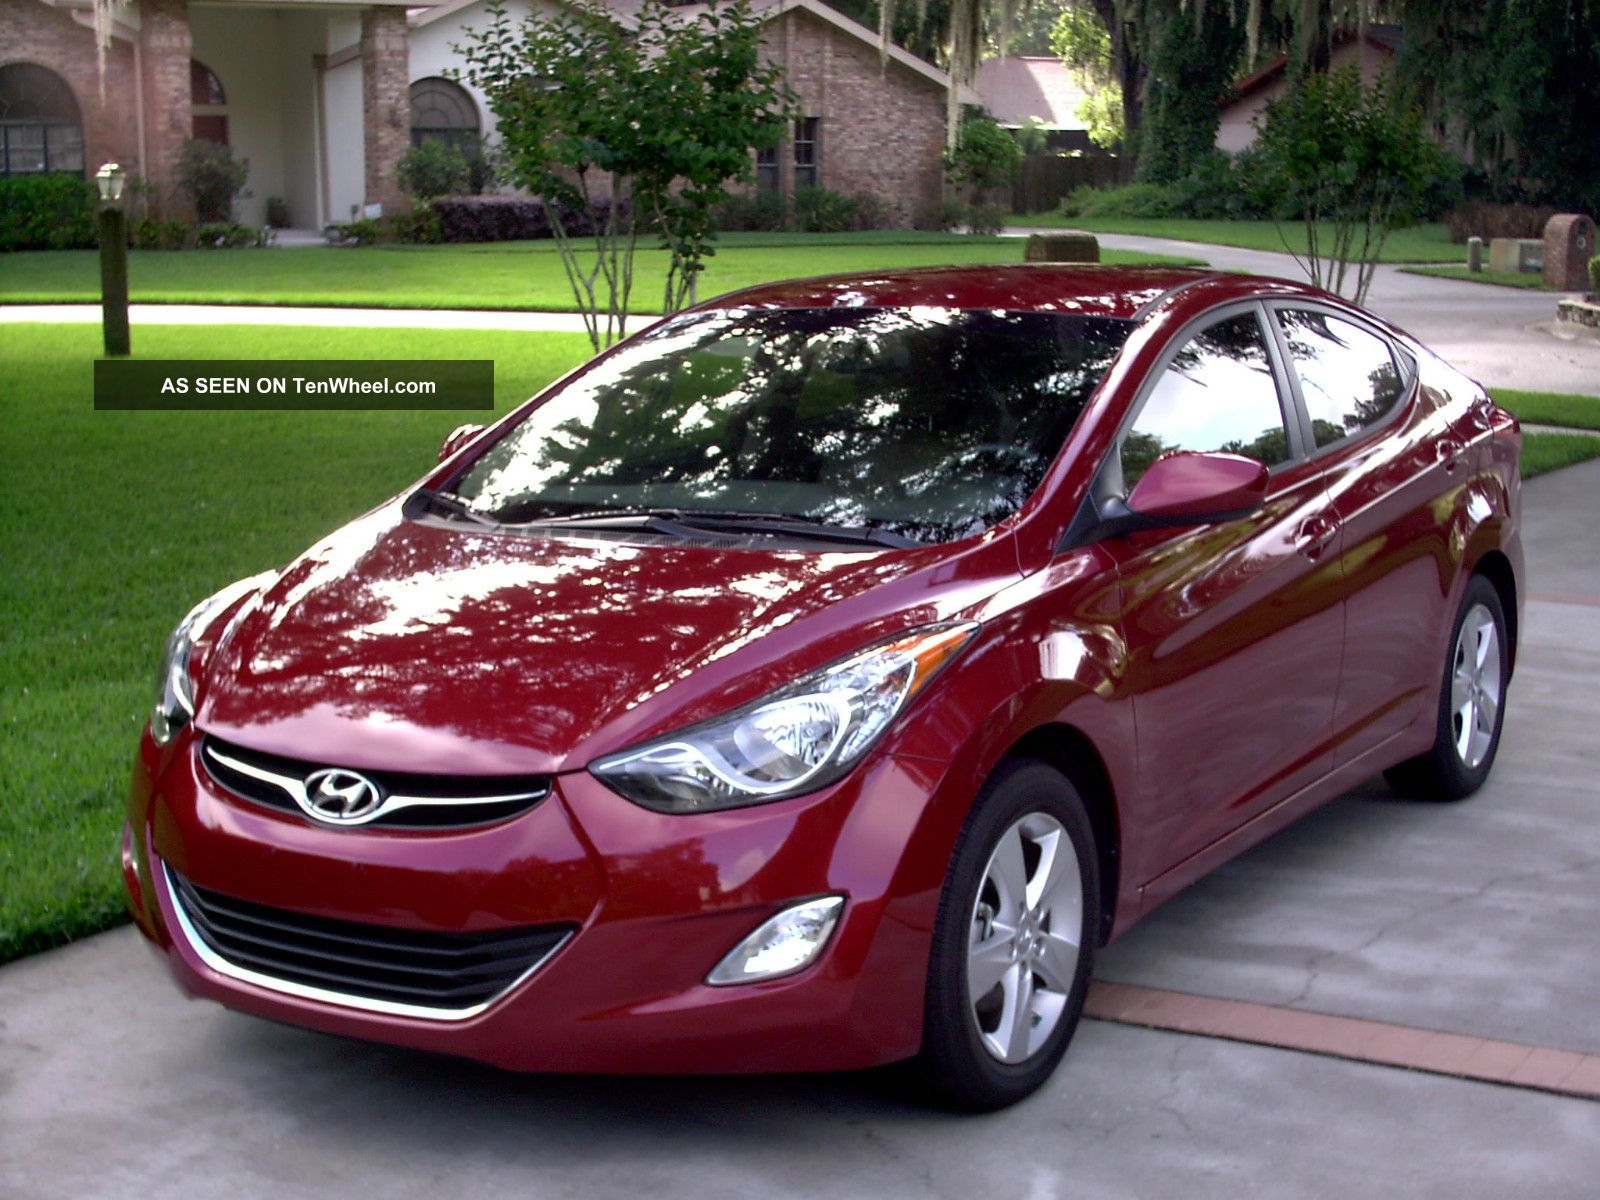 pictures 2013 hyundai elantra - photo #34